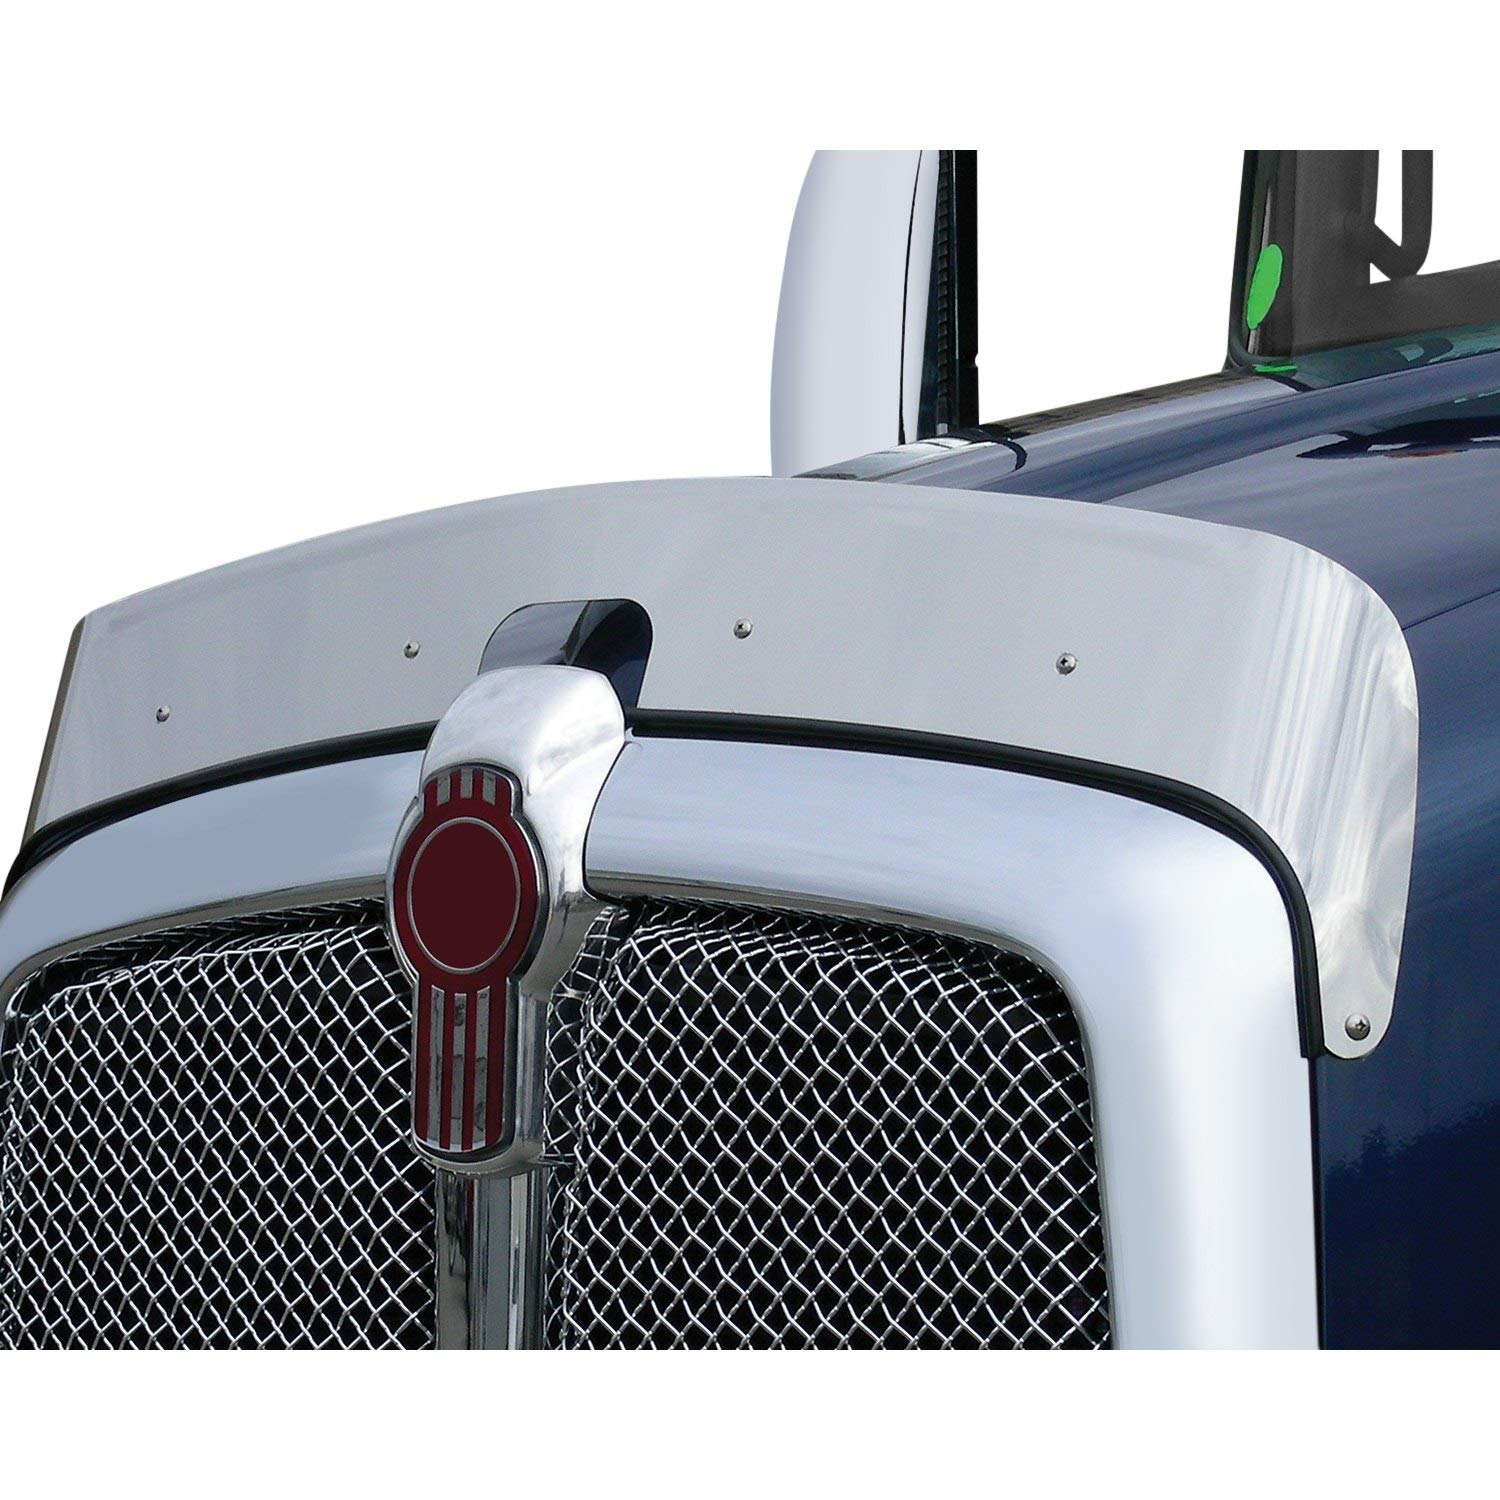 United Pacific Kenworth T660 Bug Deflector, Stainless Steel by United Pacific Chrome